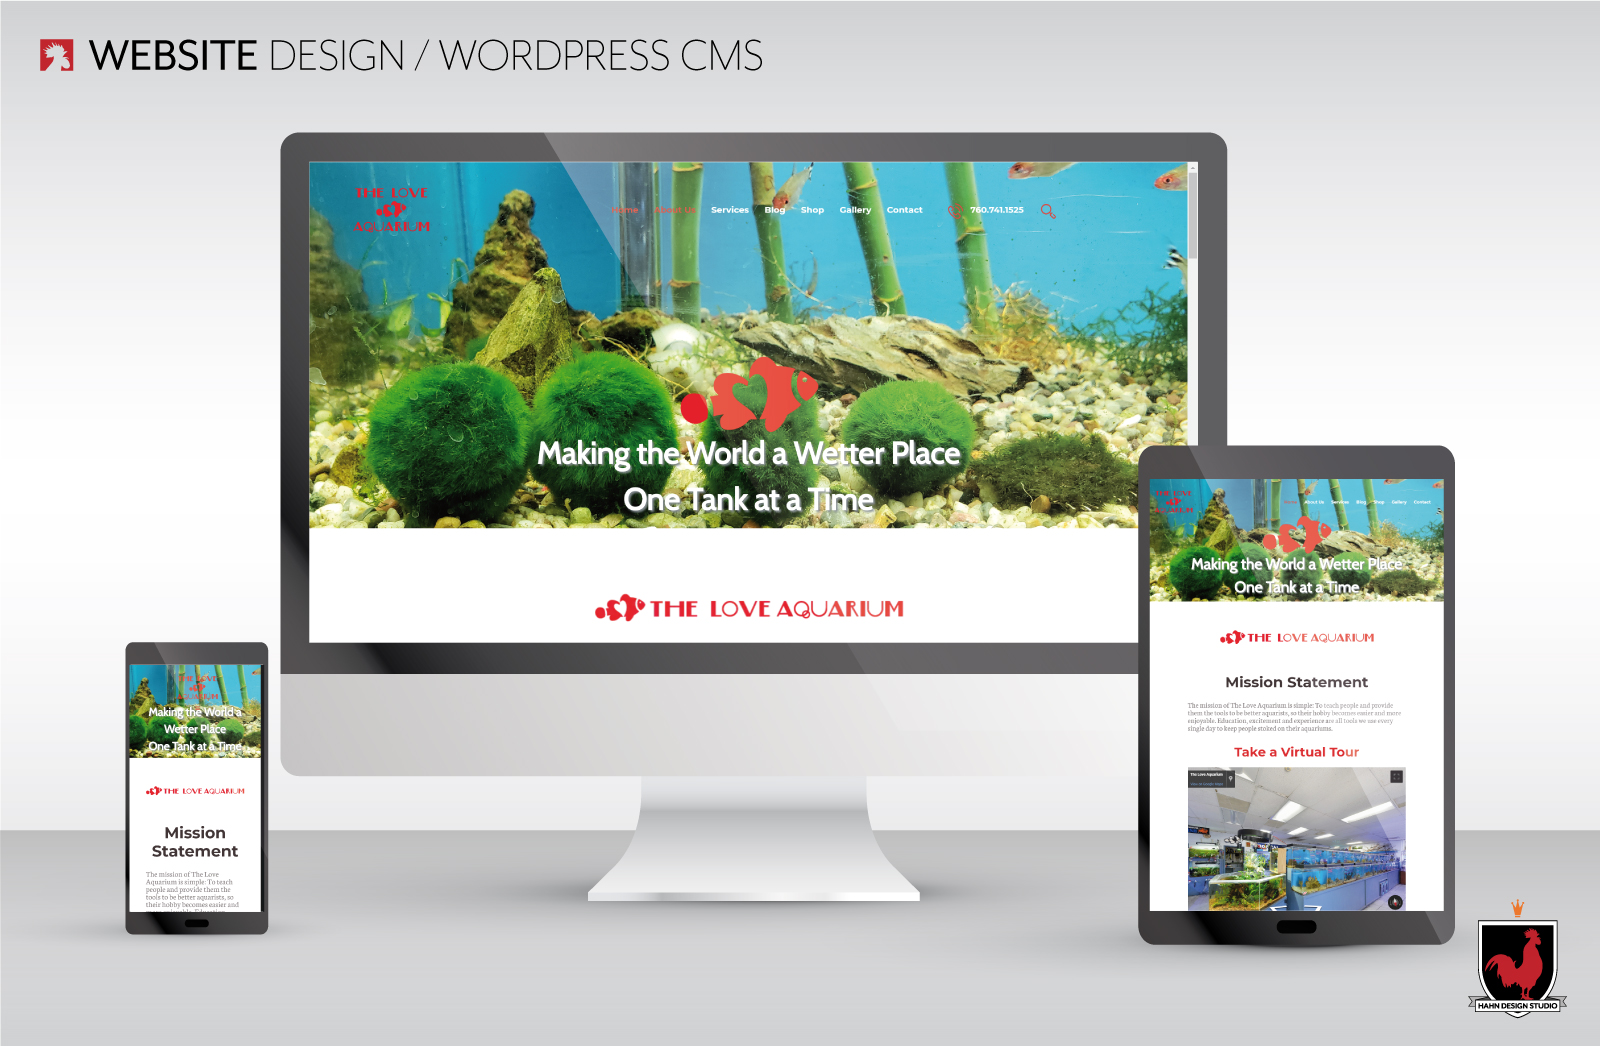 Website Design for The Love Aquarium designed by Hahn Design Studio, San Marcos, CA